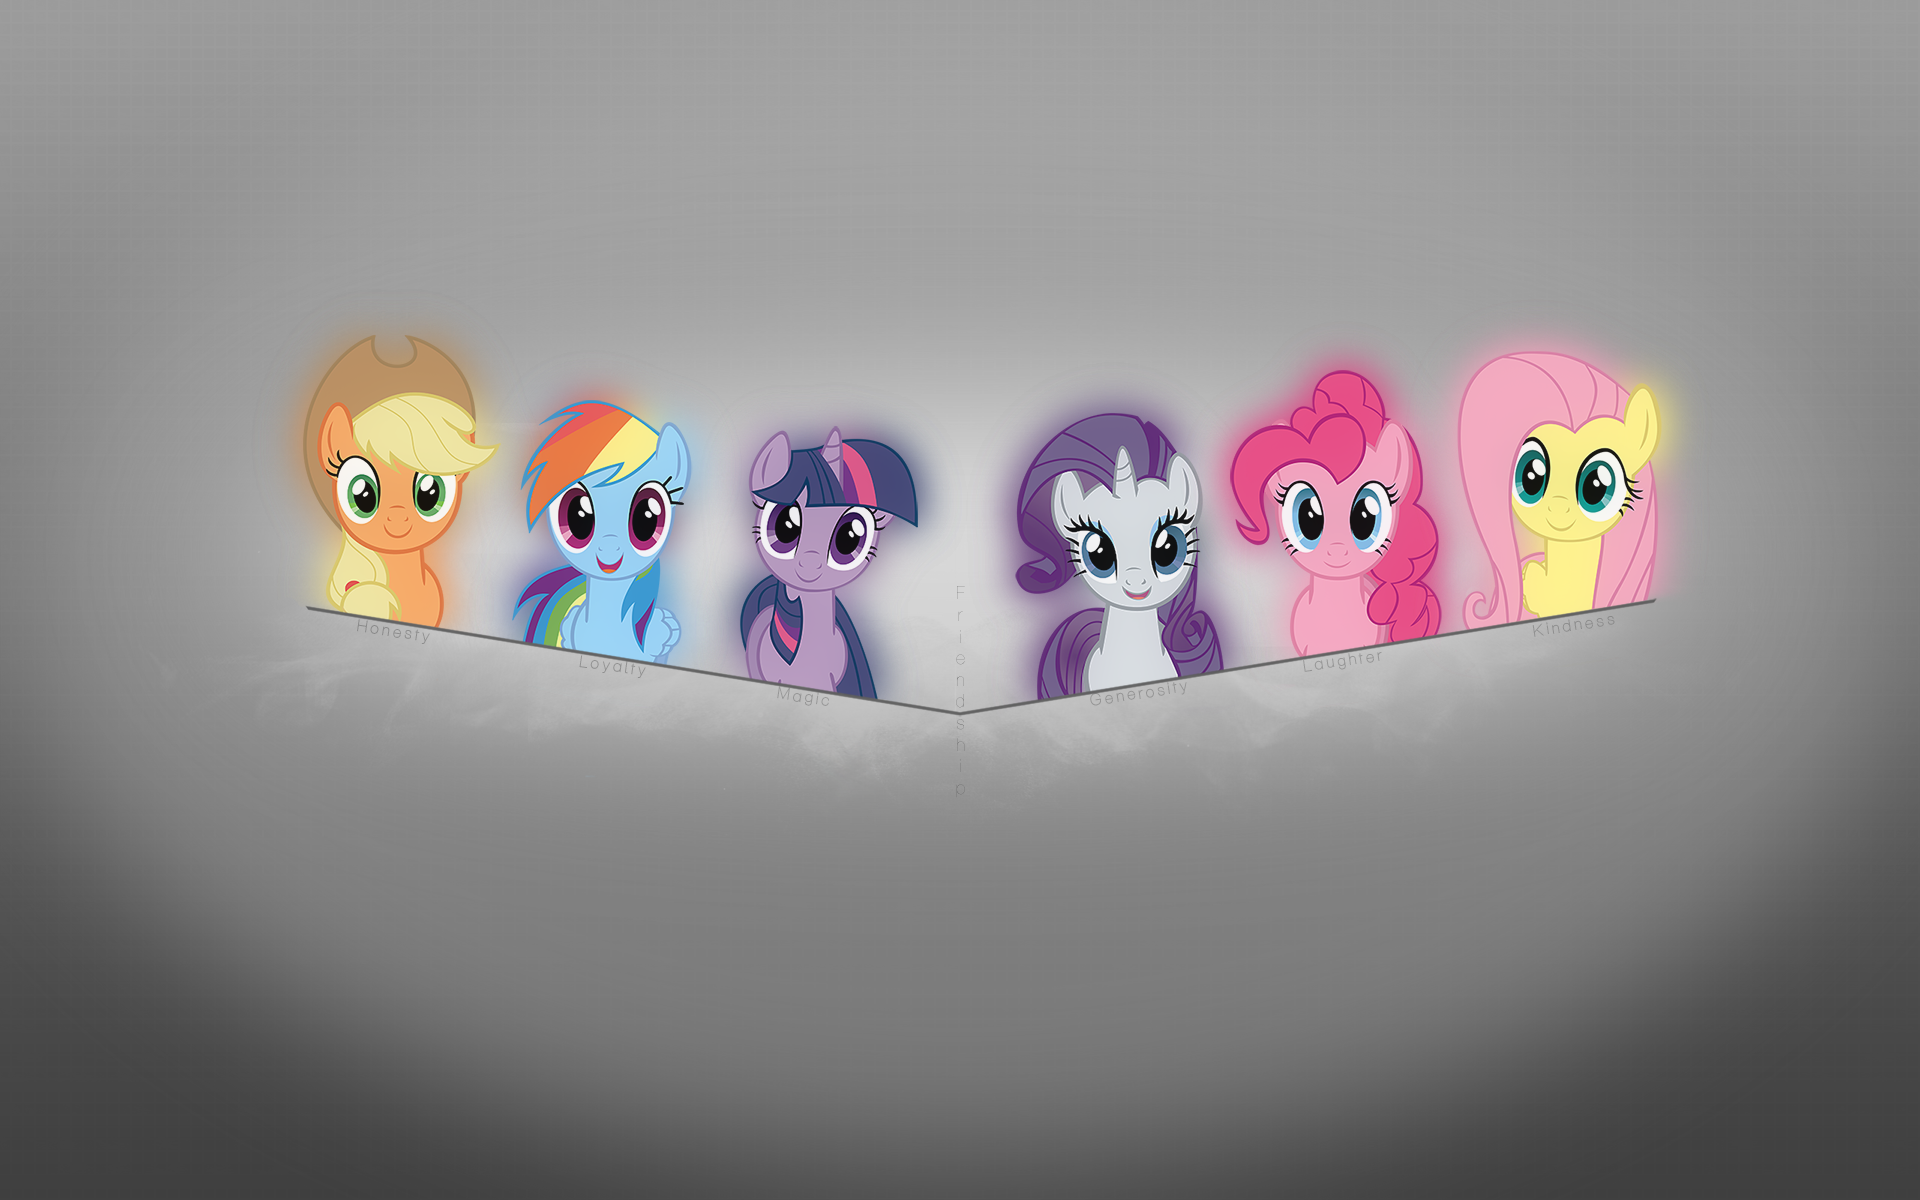 mane6.png by Mac3030 and RichHap